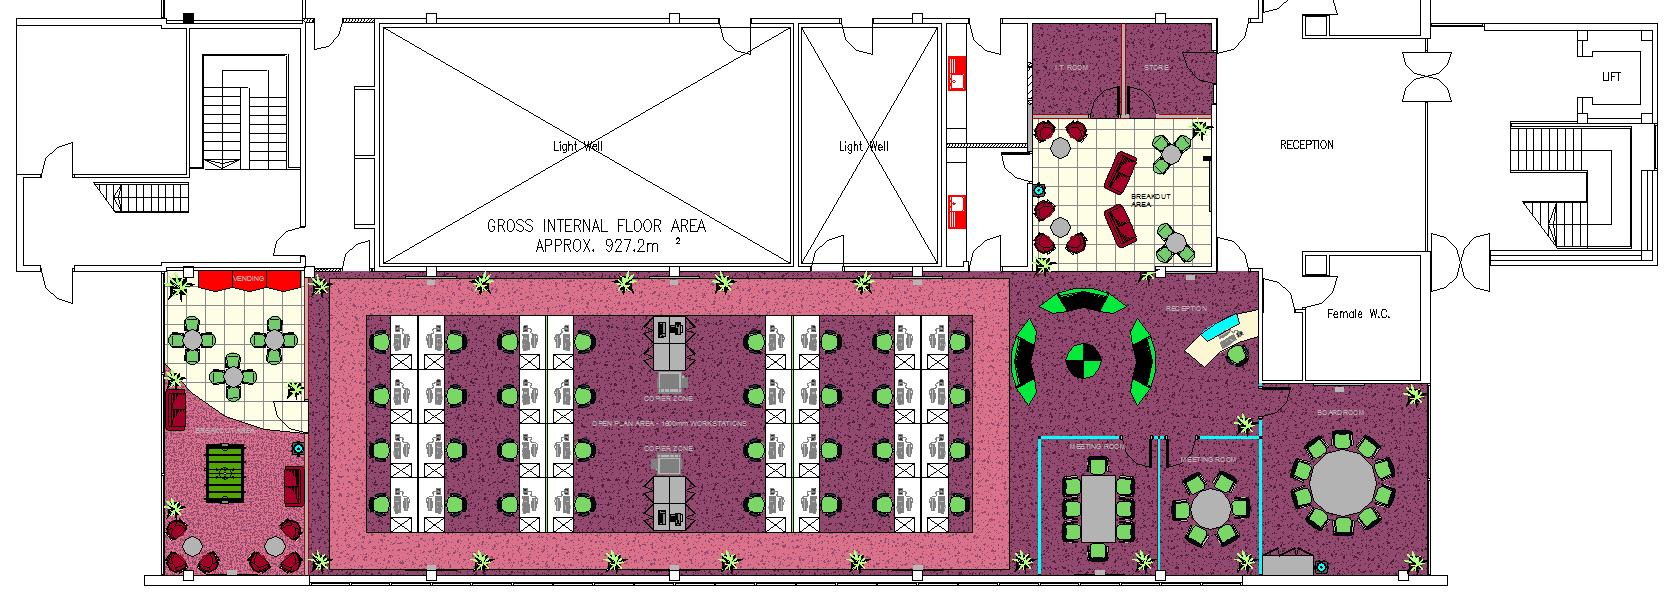 cad layout modular 4 office design cad office space layout